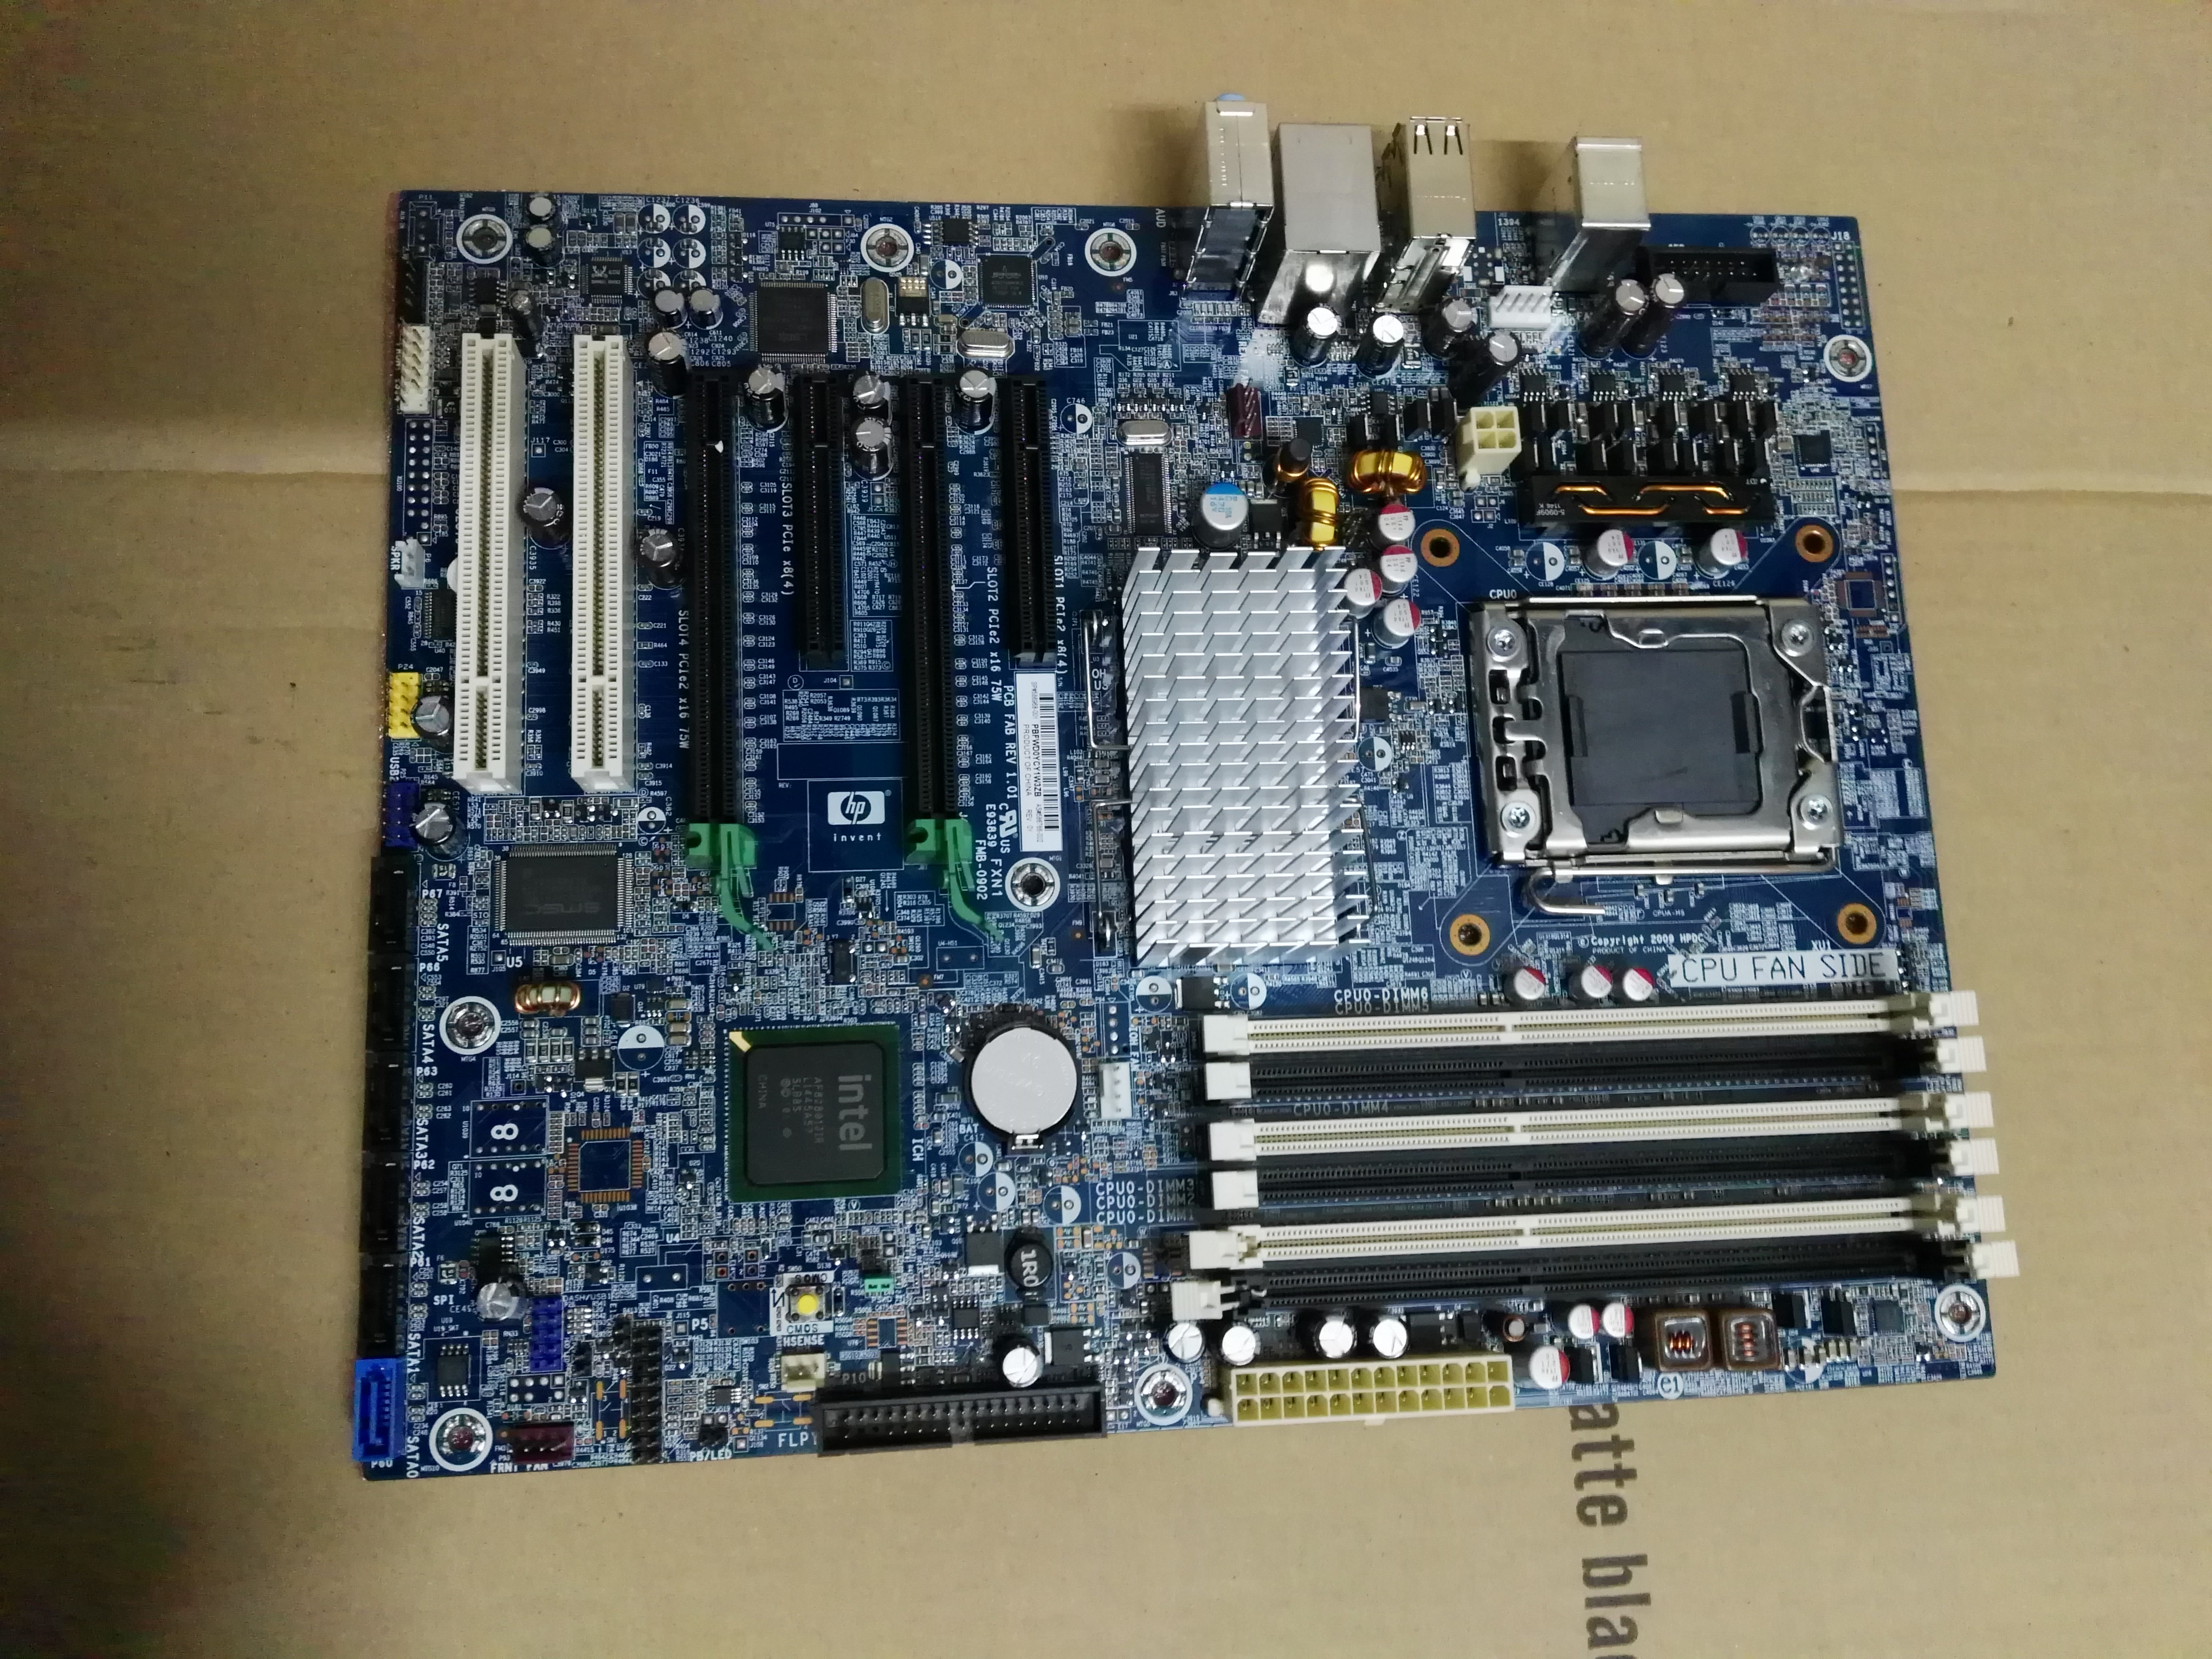 66 92] HP HP Z400 X58 motherboard 586968-001 586766-002 from